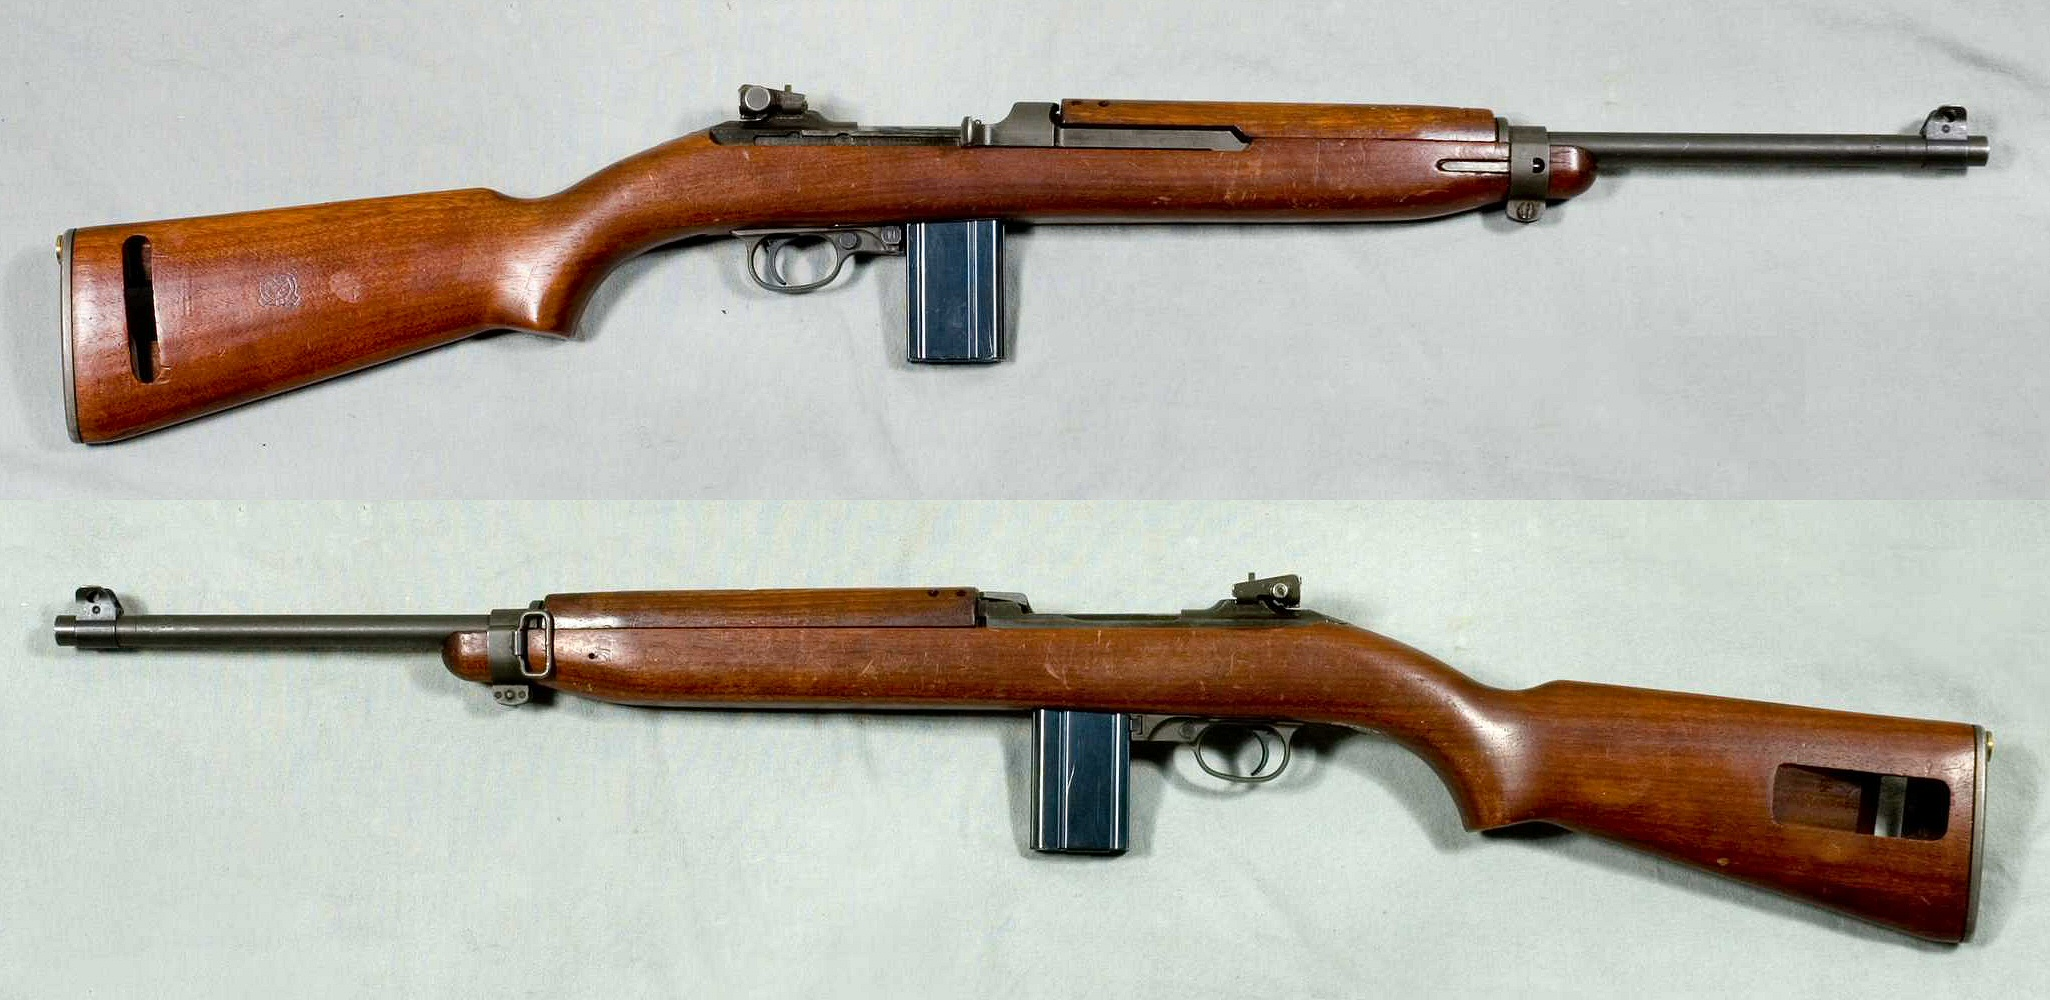 Remembering the Great Little Winchester M1 Carbine